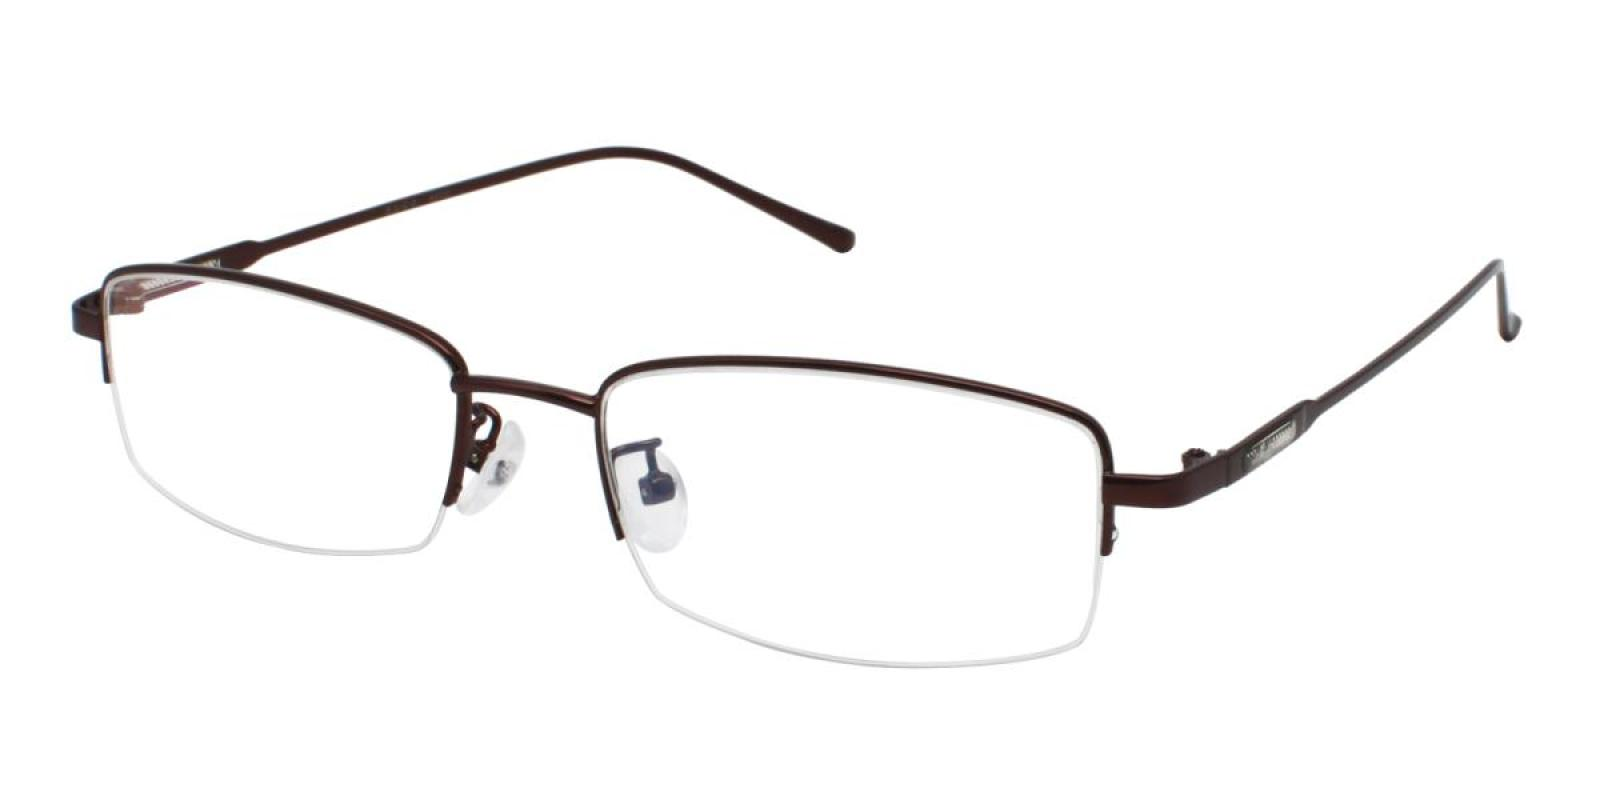 Germantown-Brown-Rectangle-Metal-Eyeglasses-additional1